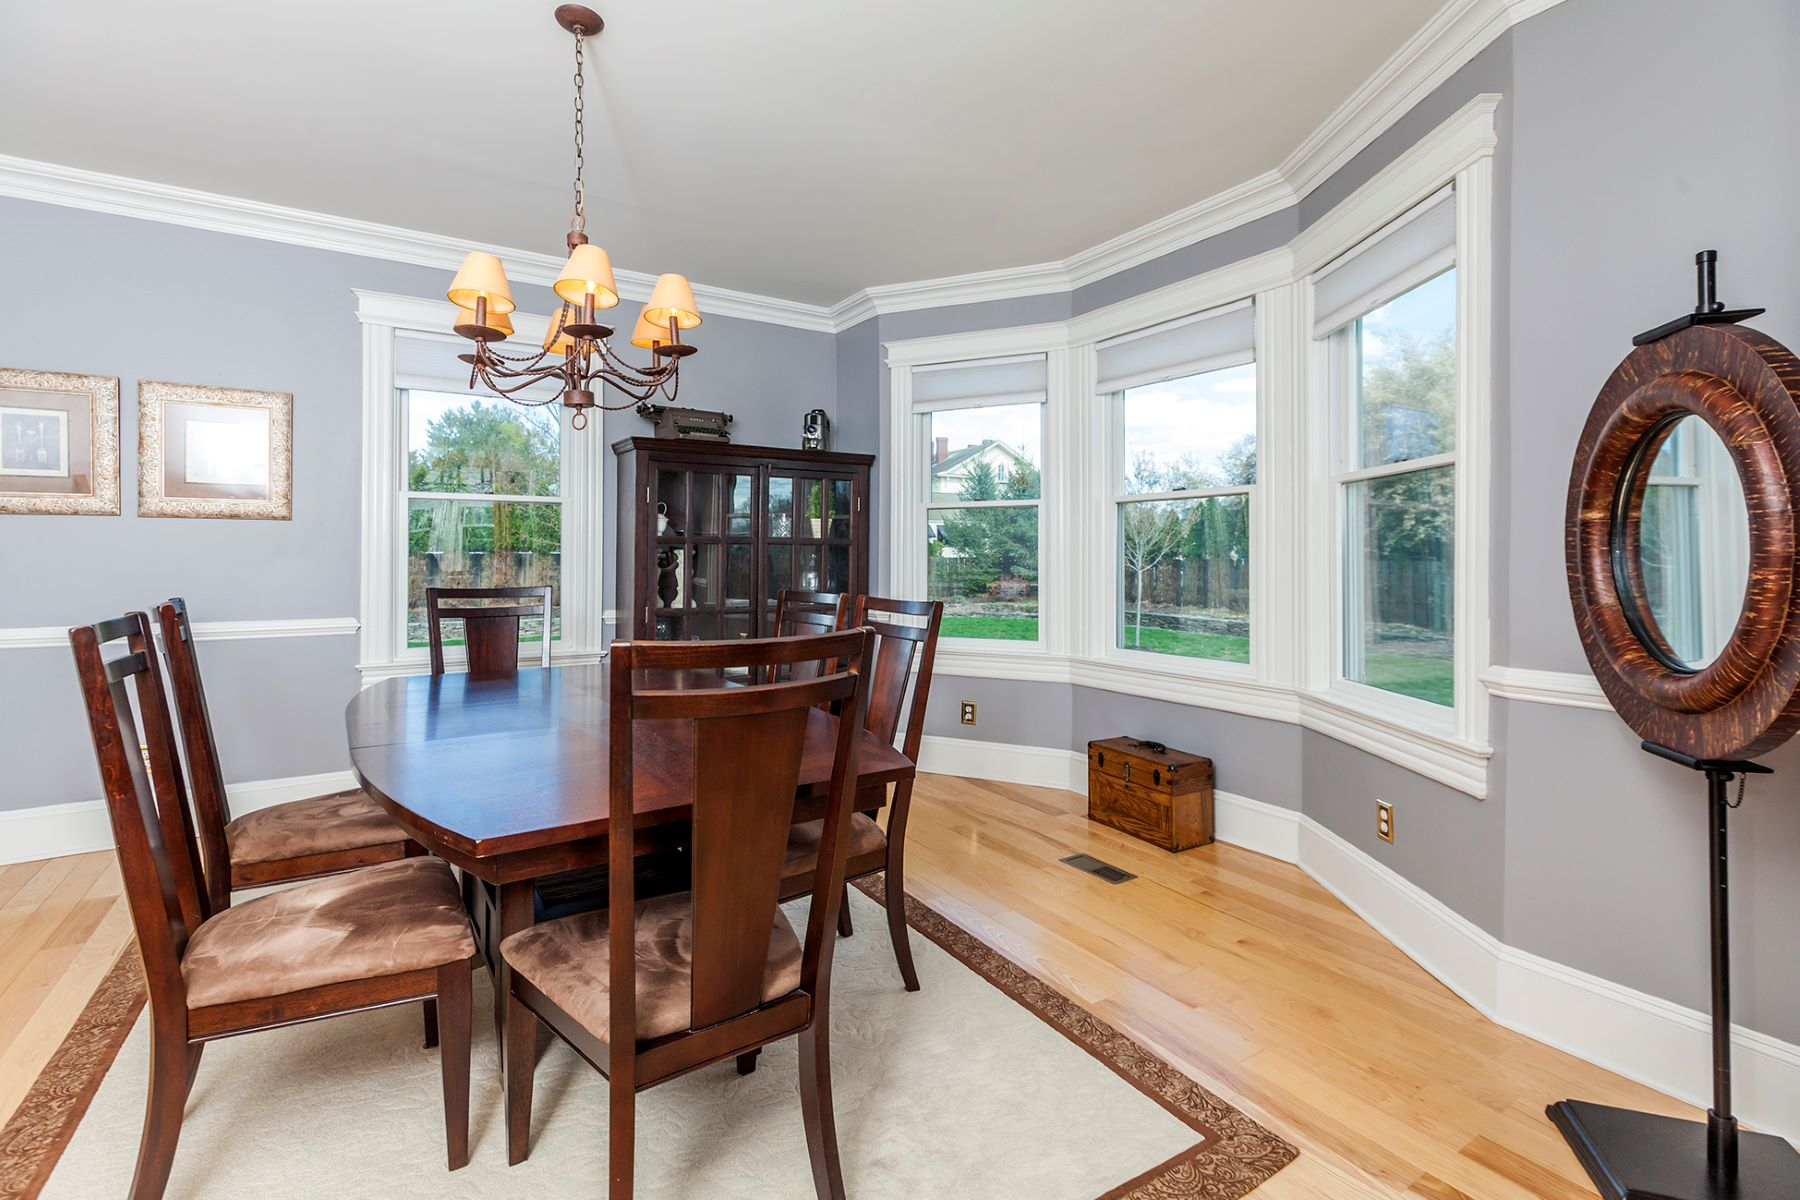 Additional photo for property listing at Lovely Renovated Colonial in Historic Kingston - Franklin Township 5 Church Street, Kingston, New Jersey 08525 United States